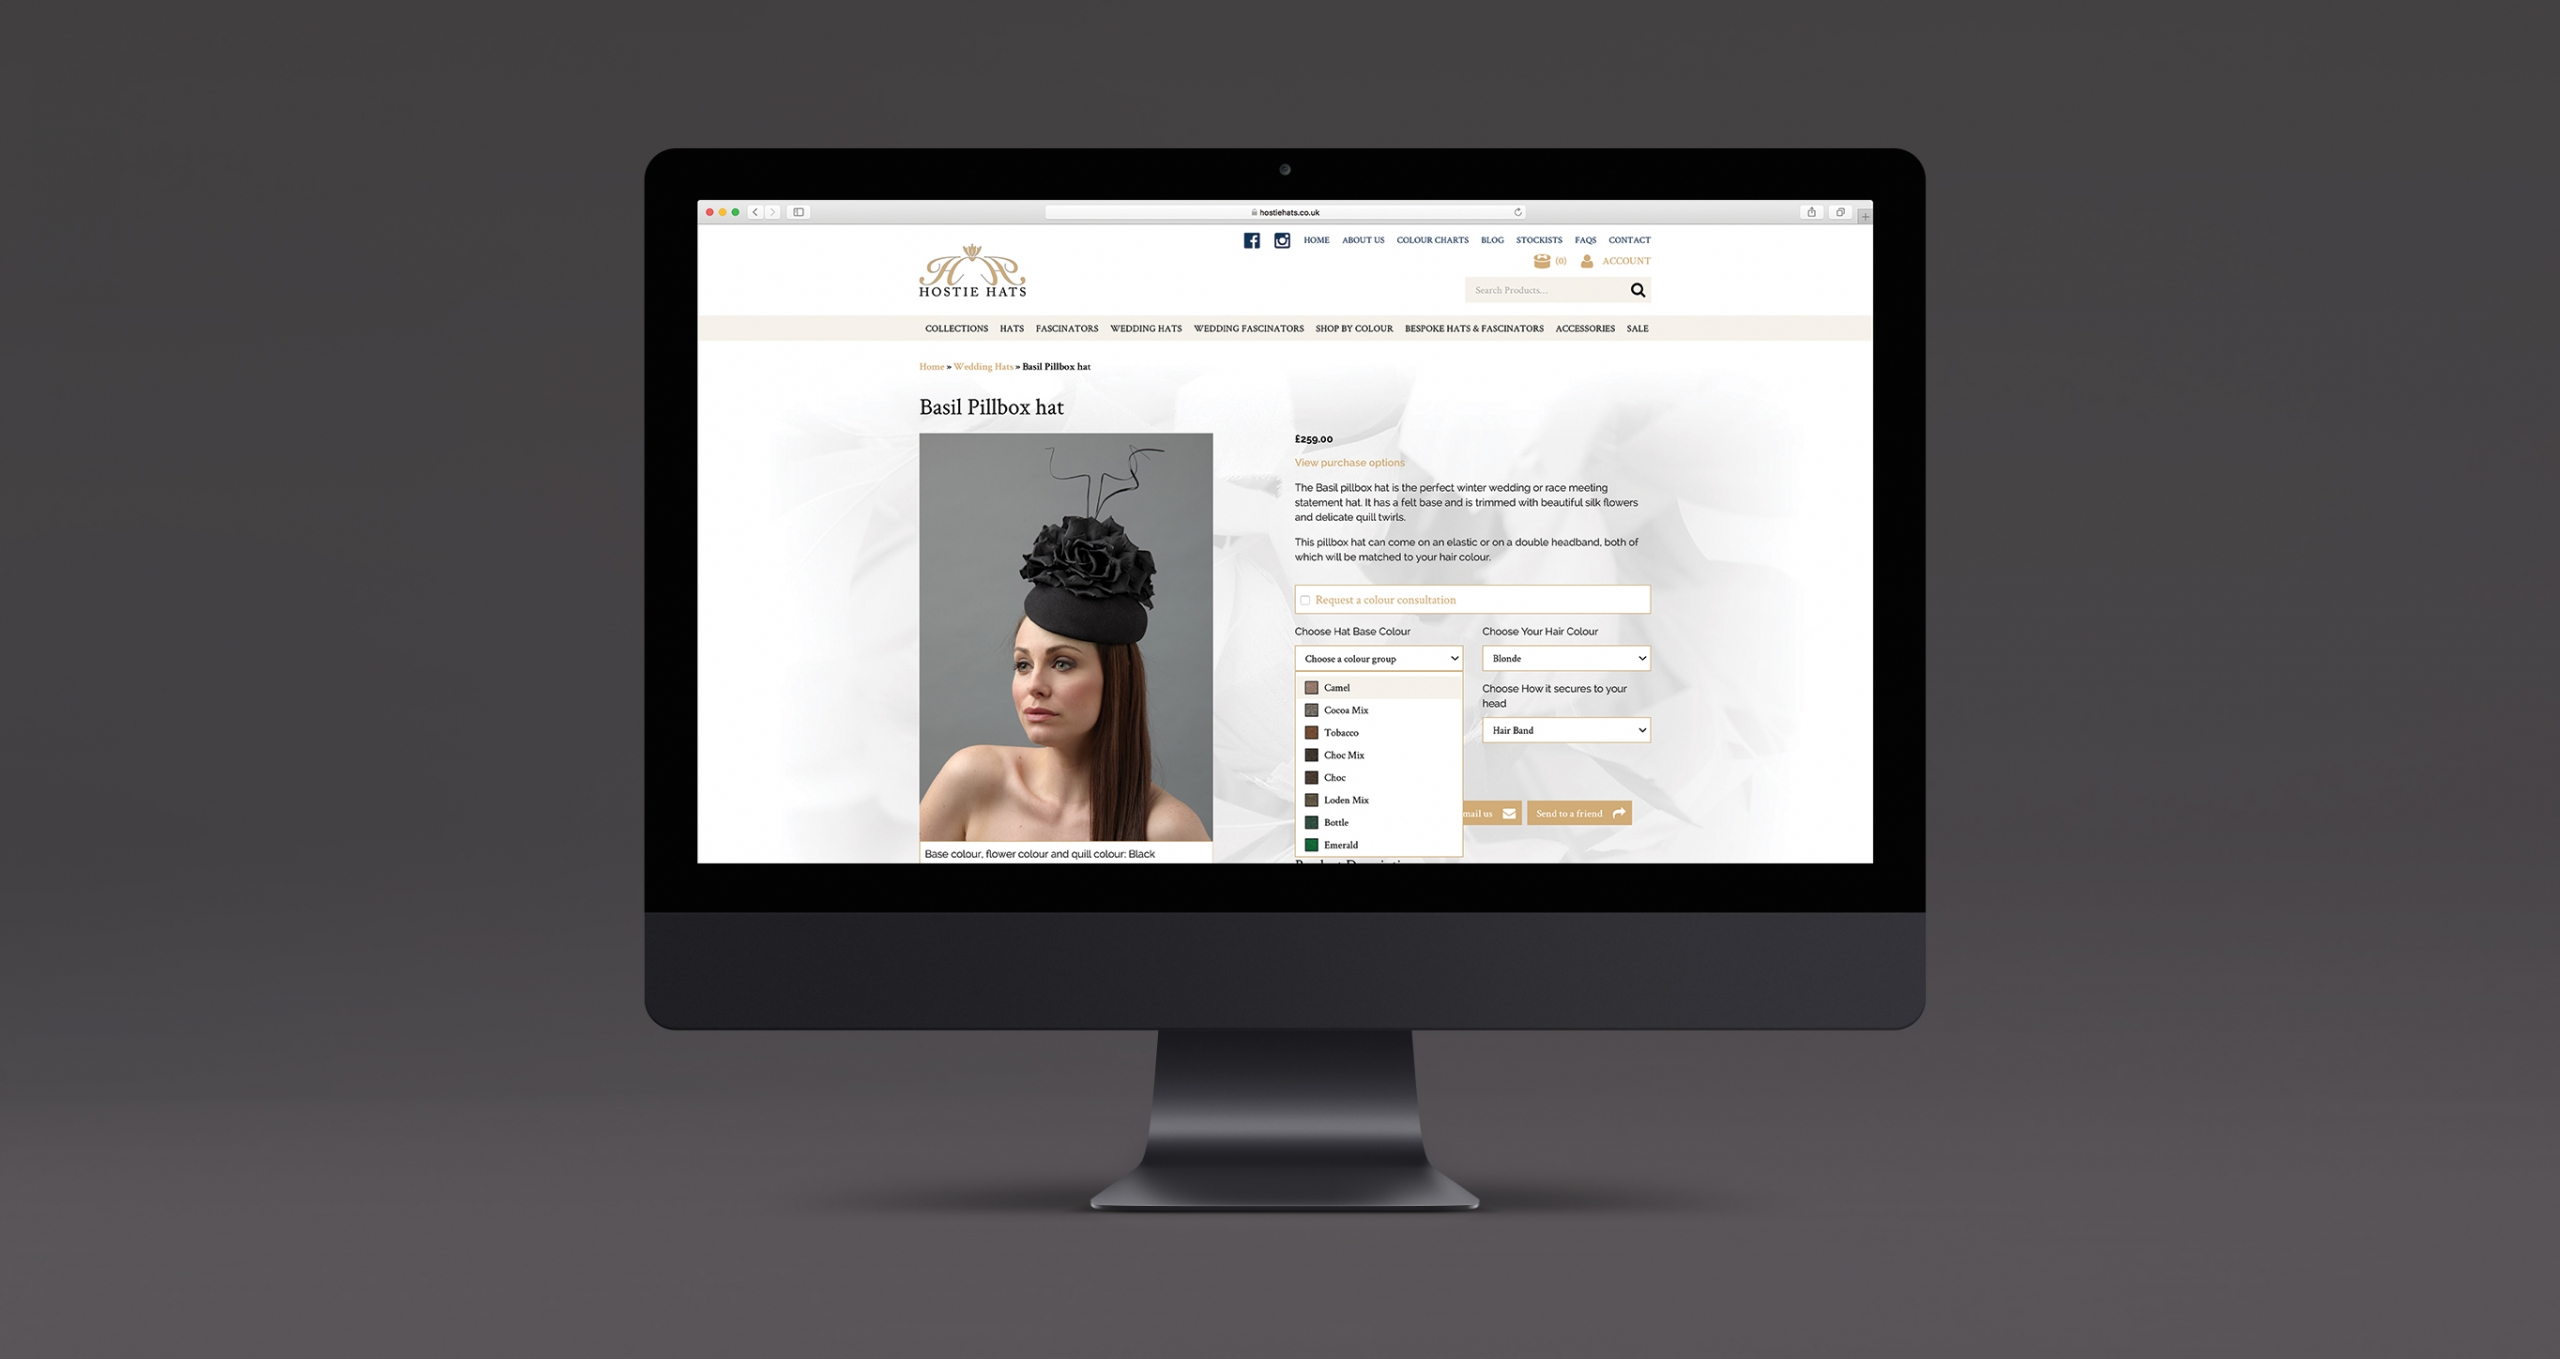 WordPress web design and development - Hostie Hats